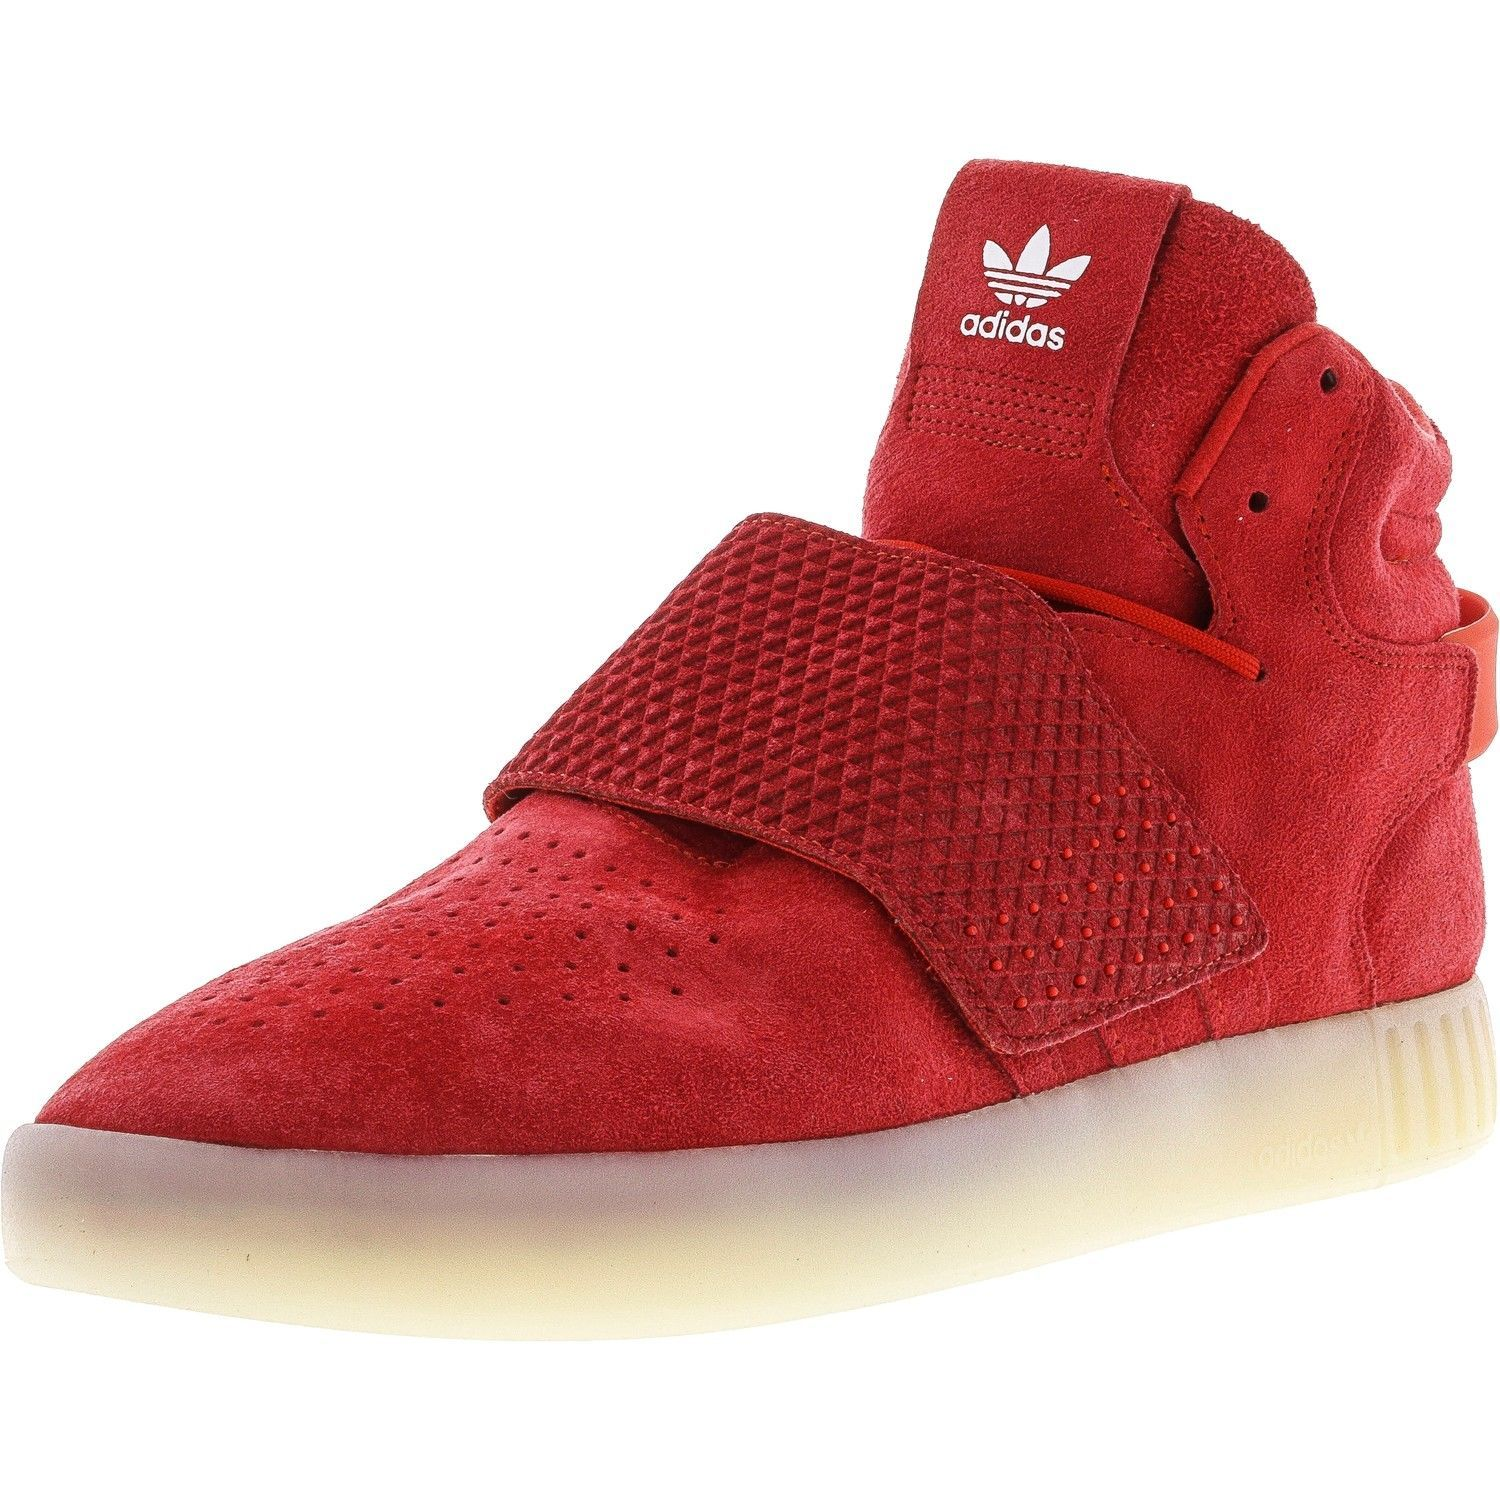 Adidas Men s Tubular Invader Strap High-Top and 50 similar items. S l1600 cf2548f00